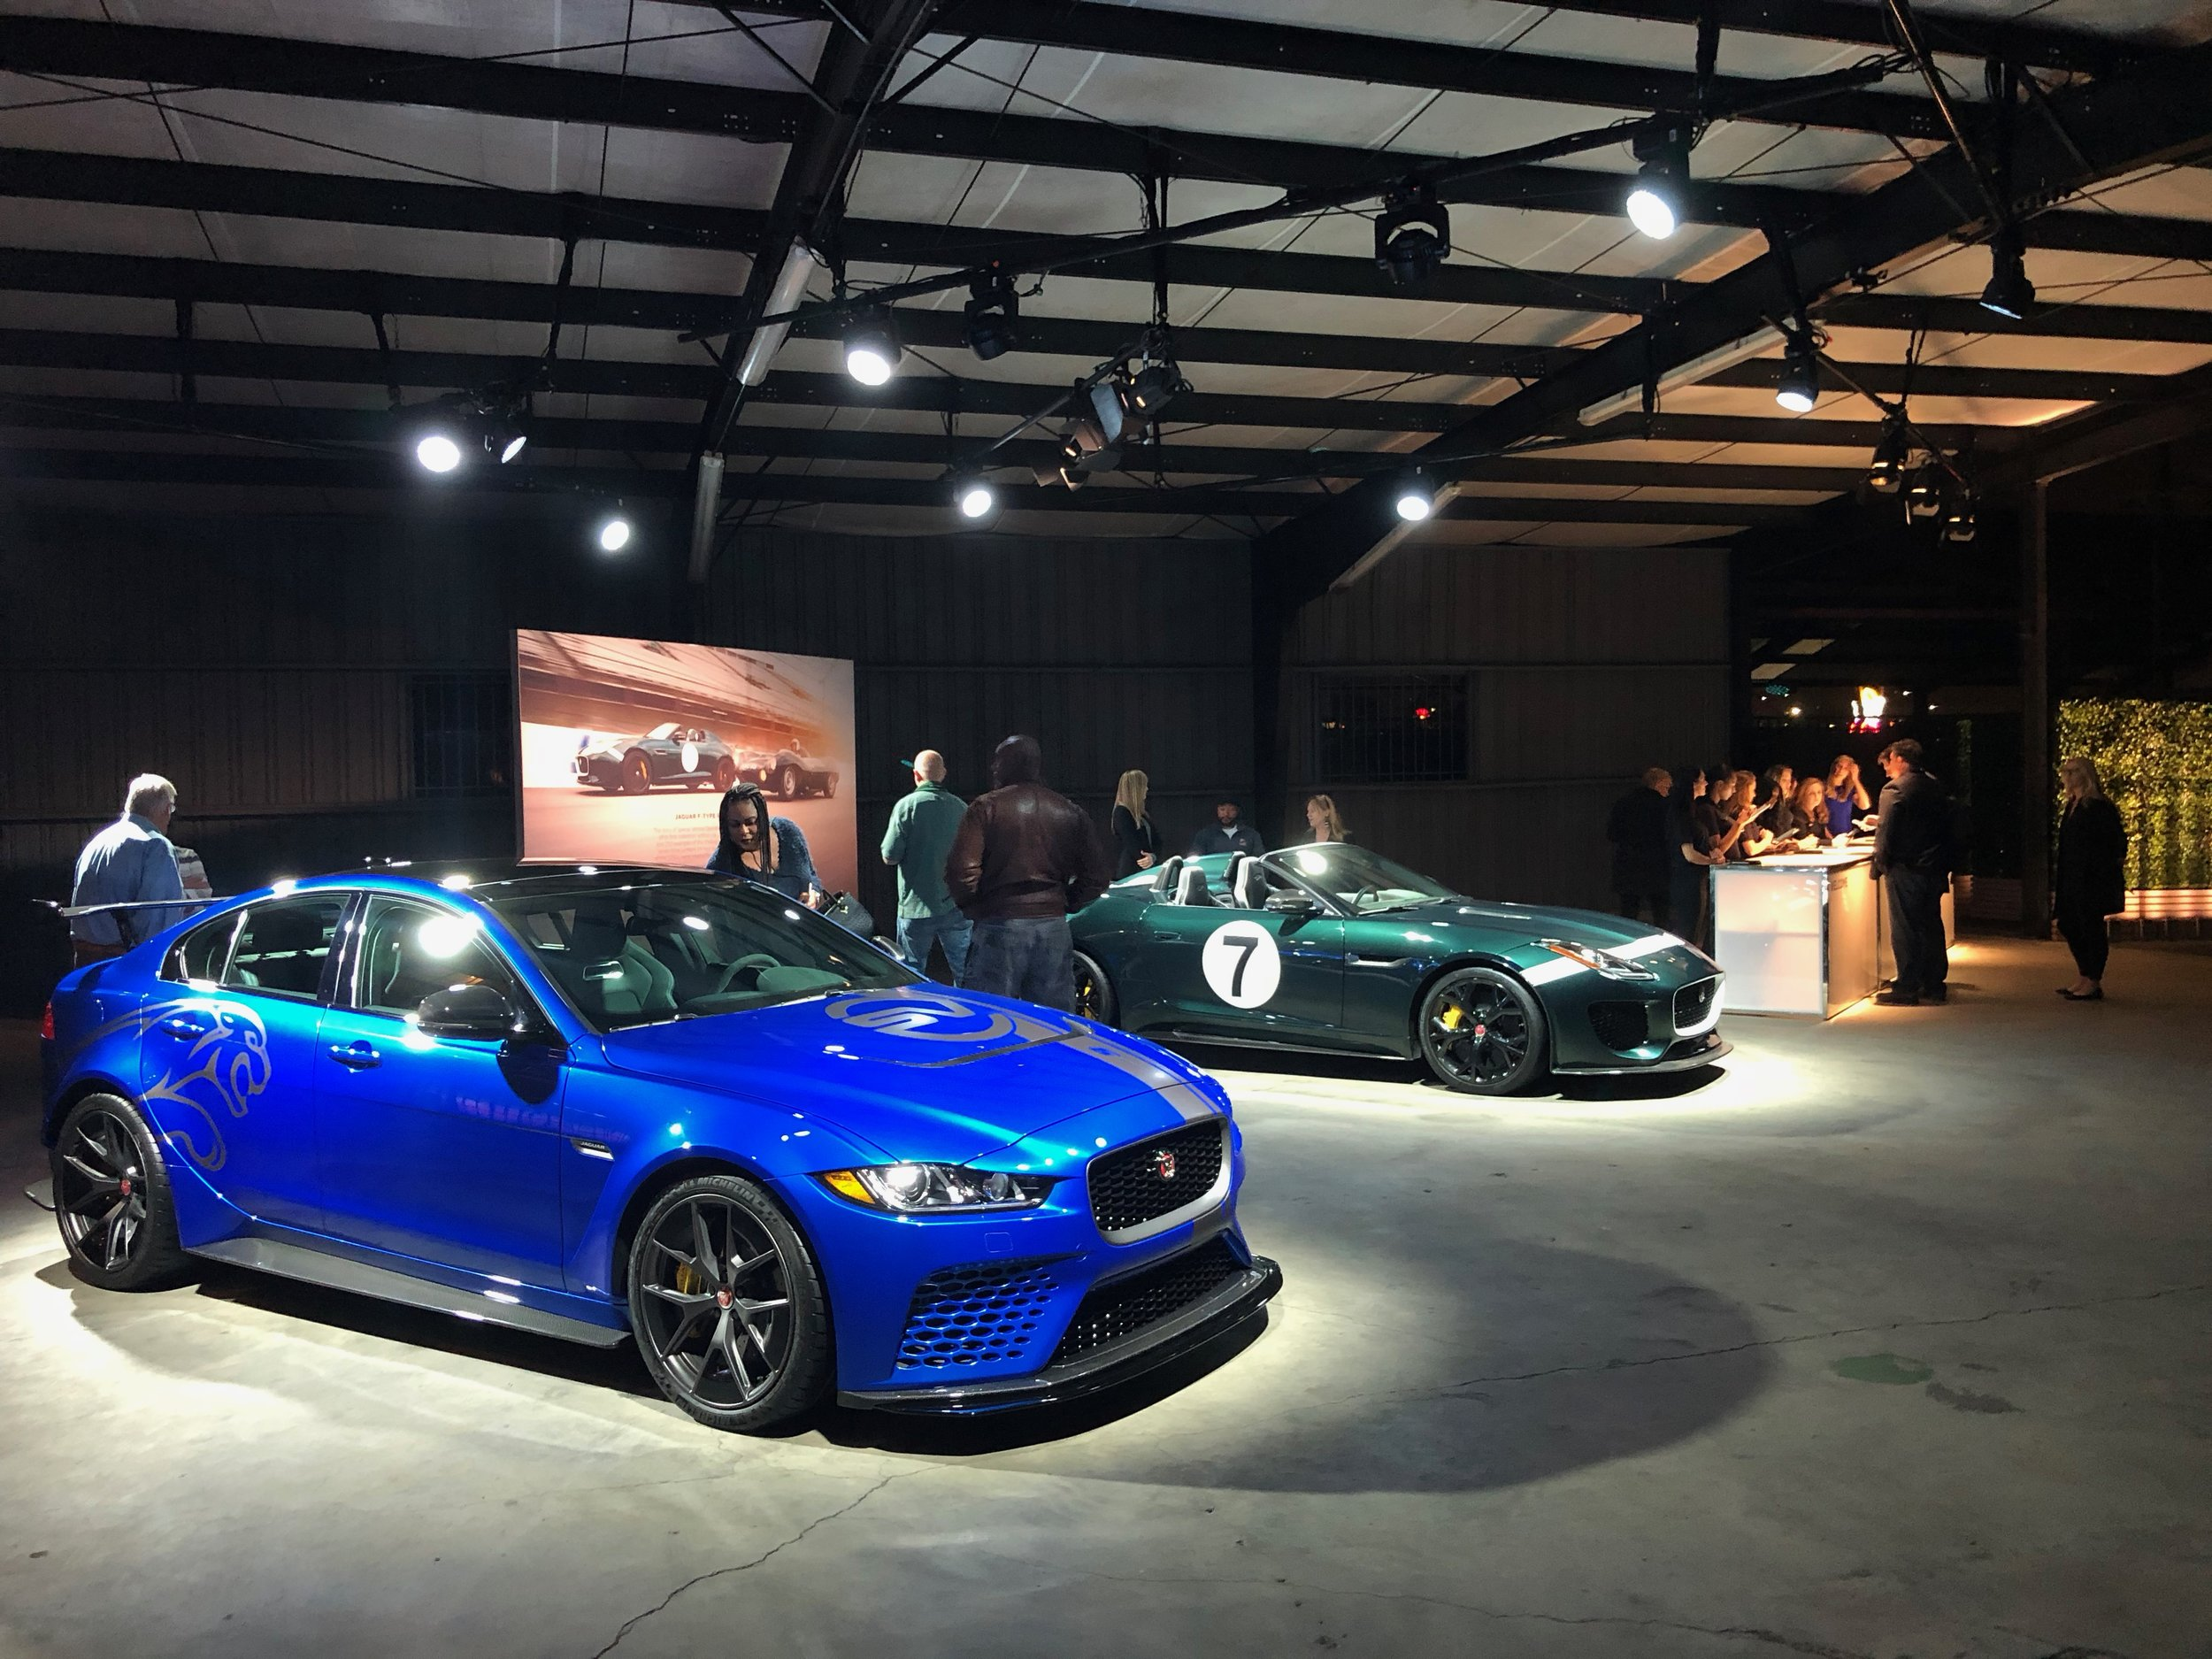 Jaguar / Land Rover SVO Product Launch Event  Imagination, Inc.  HD Buttercup - Los Angeles, CA  2017